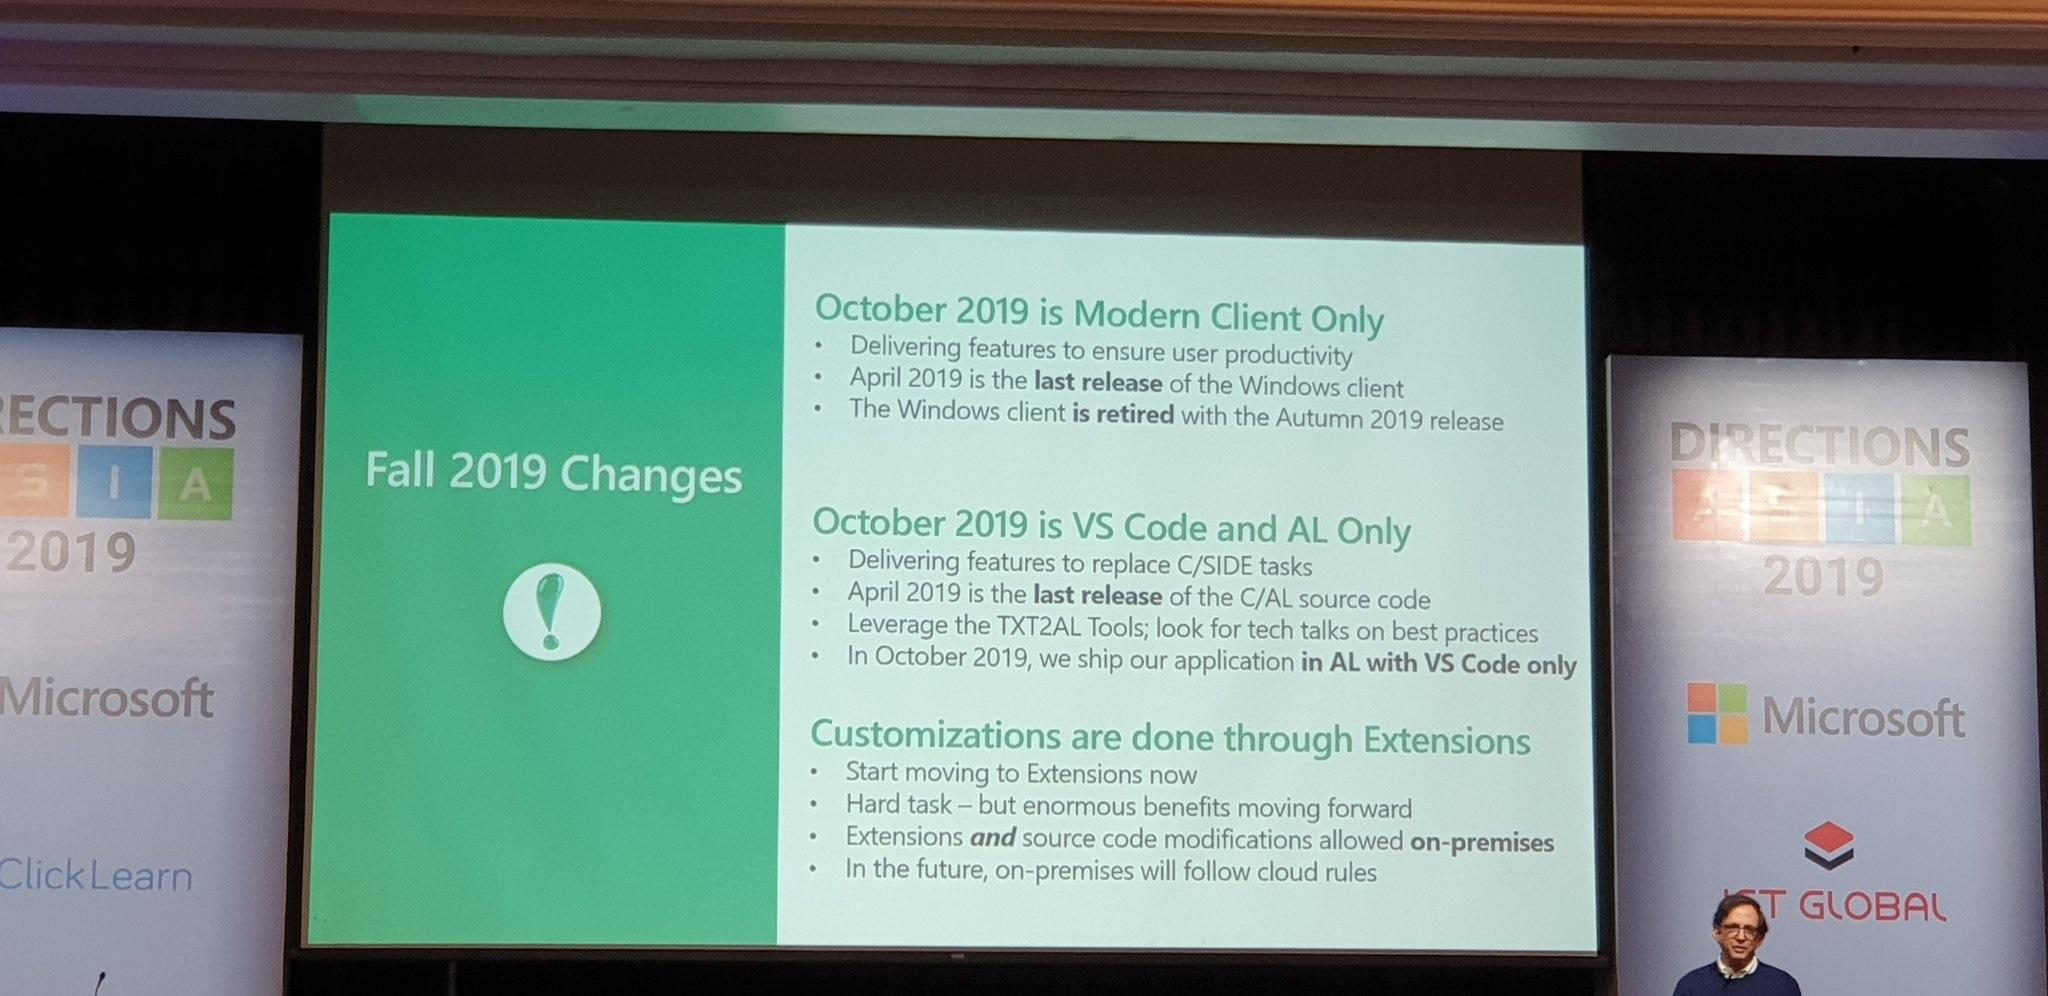 Microsoft Dynamics 365 Business Central Fall 2019 changes